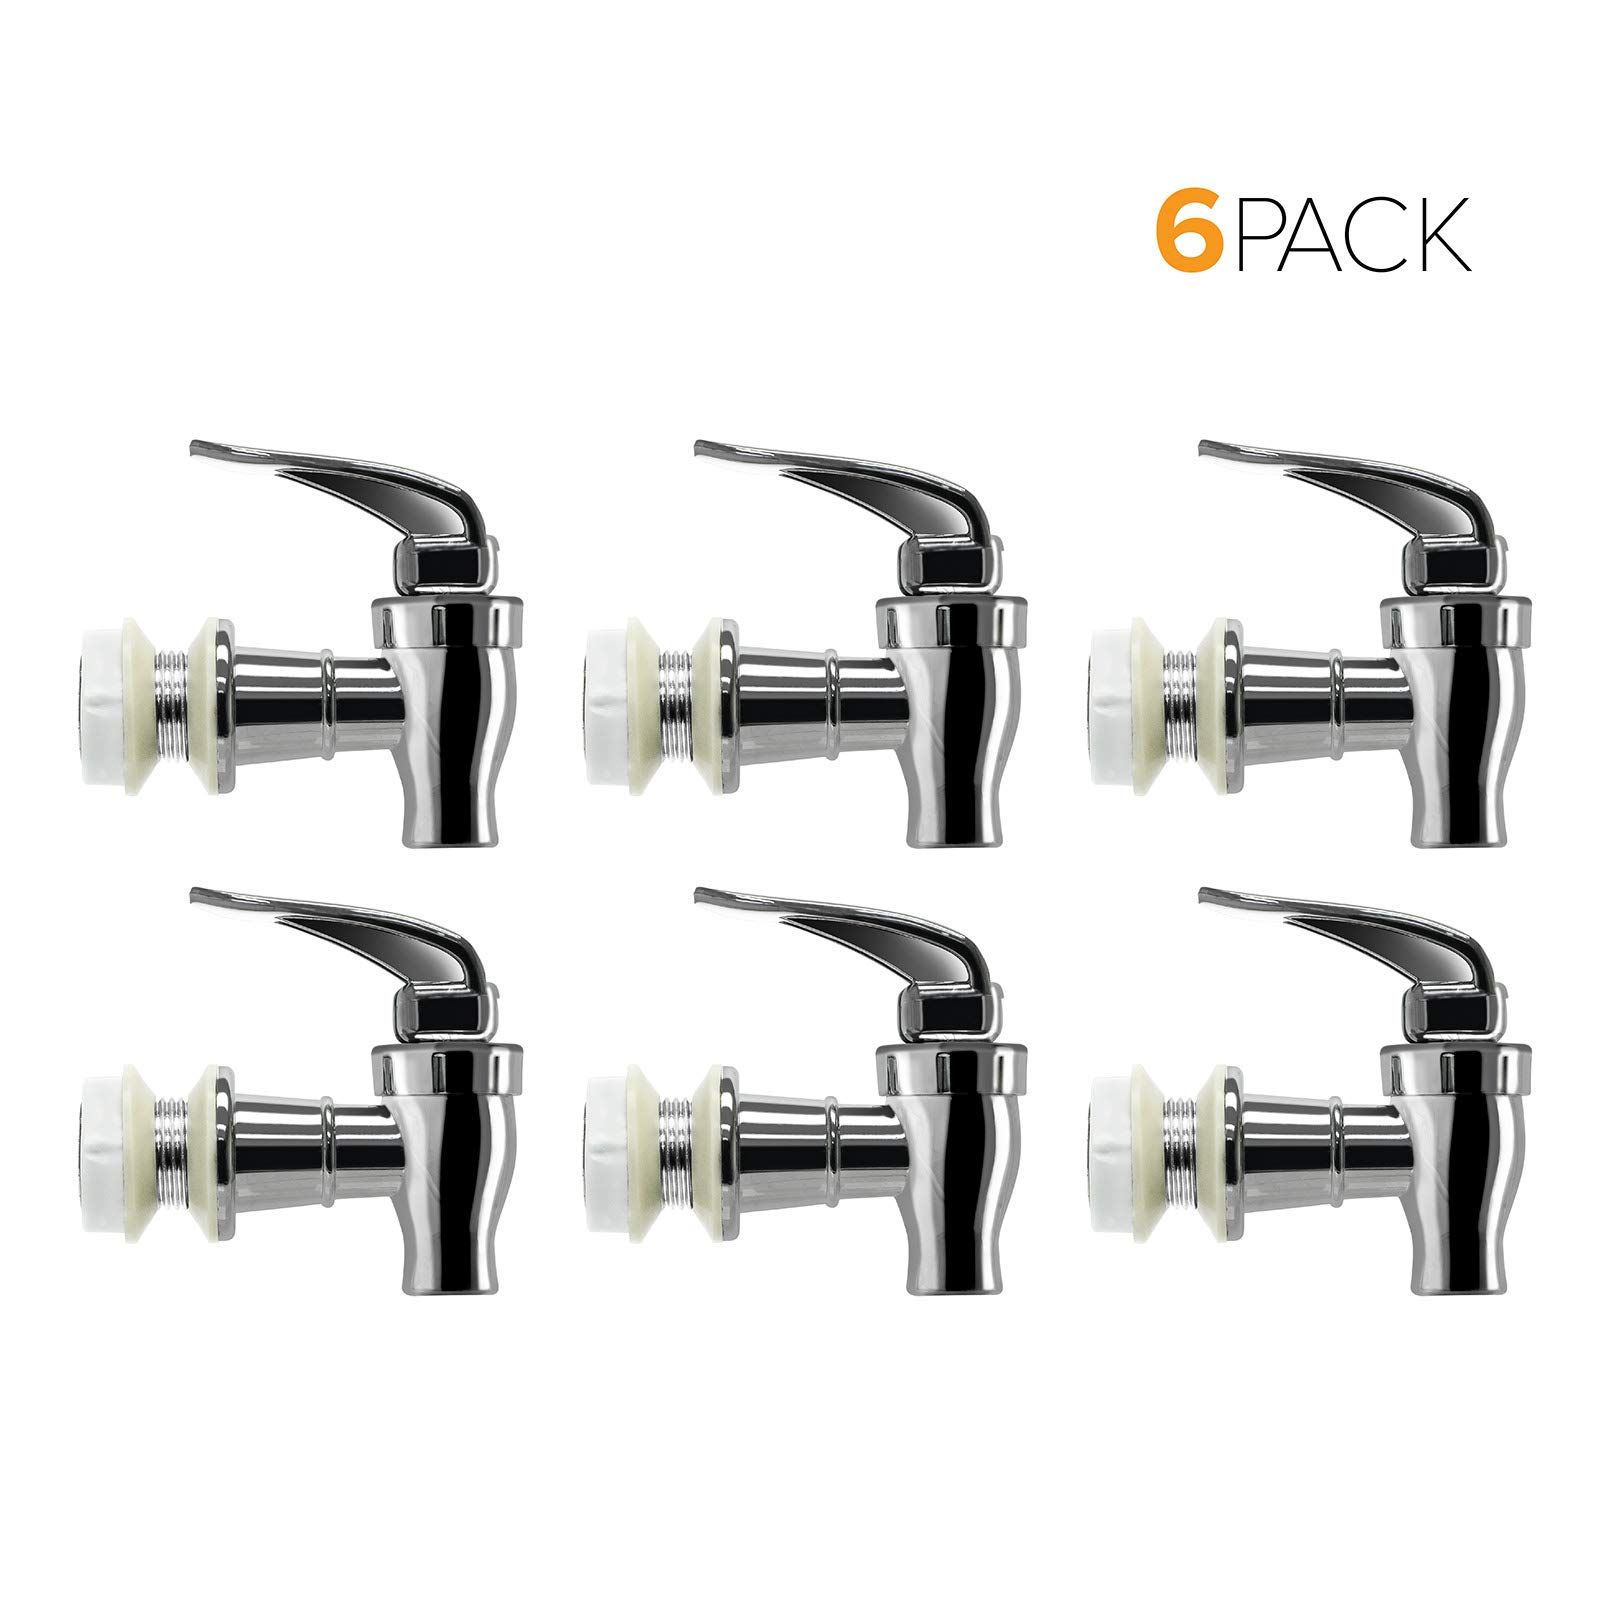 Brio Water Dispenser Replacement Valve 6-PACK, Cooler Faucet Spigot for Beverage Dispensers, Crocks, Coolers, and More BPA-Free Food Safe Material (Chrome)